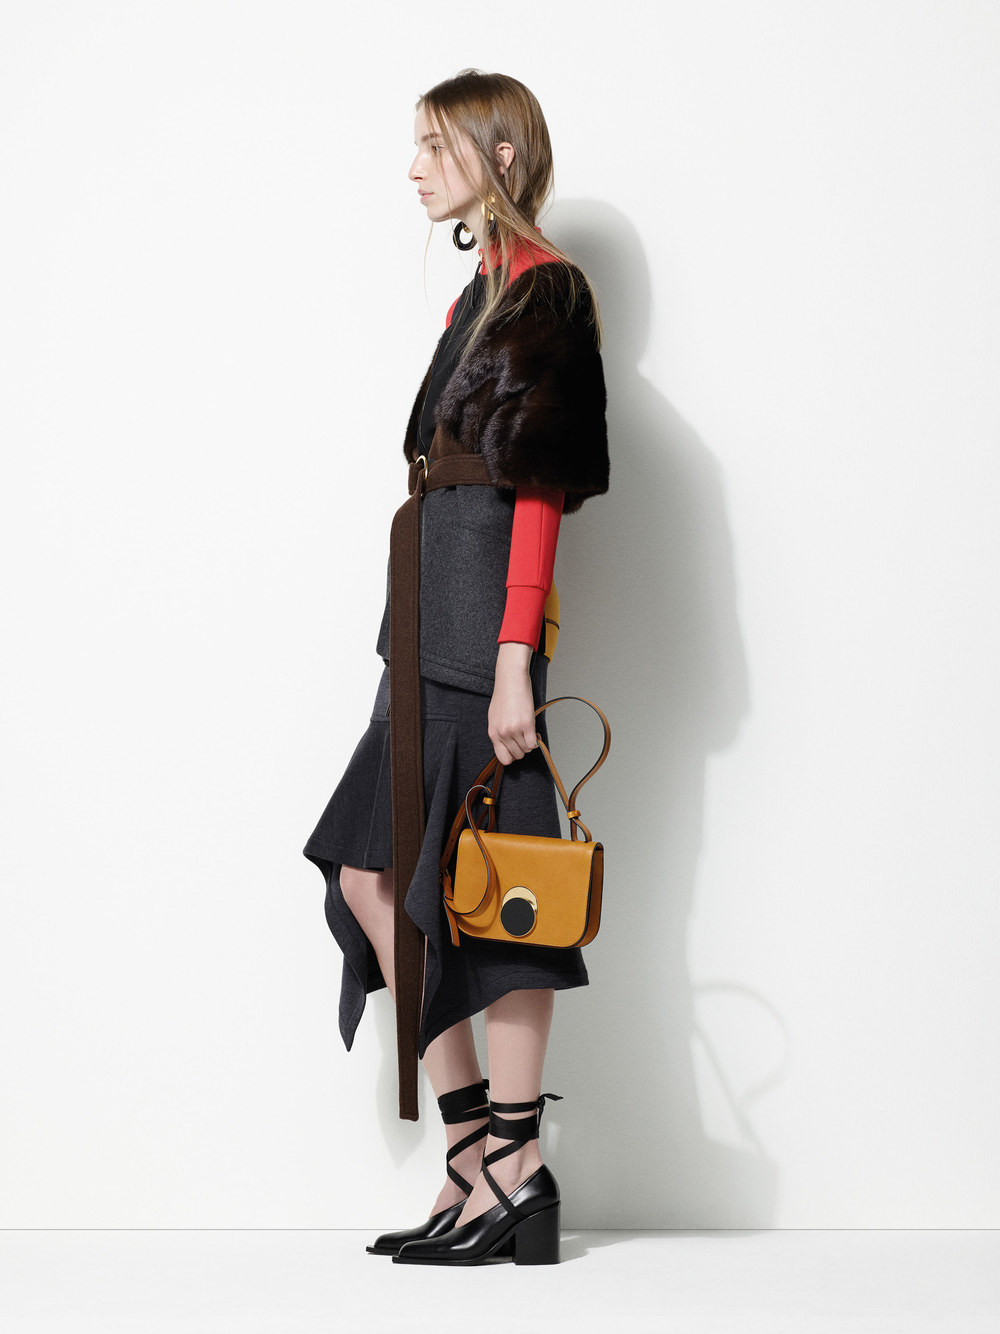 marni-pre-fall-2016-lookbook-14.jpg